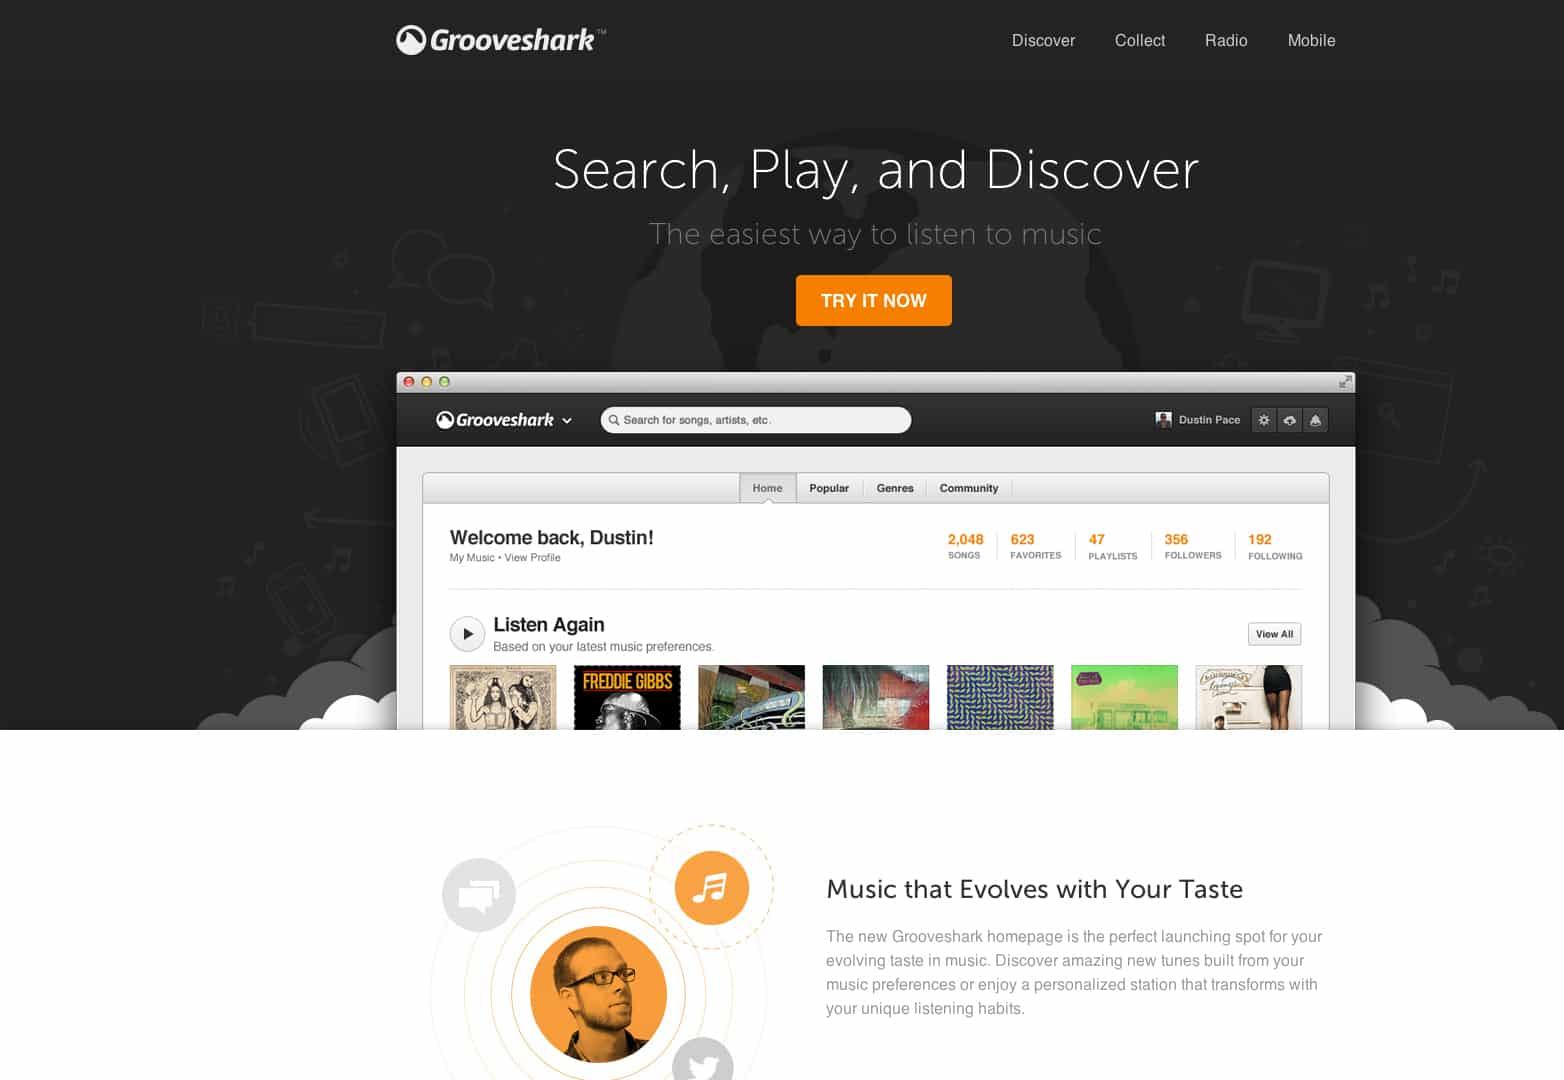 Grooveshark - Preview the New Grooveshark